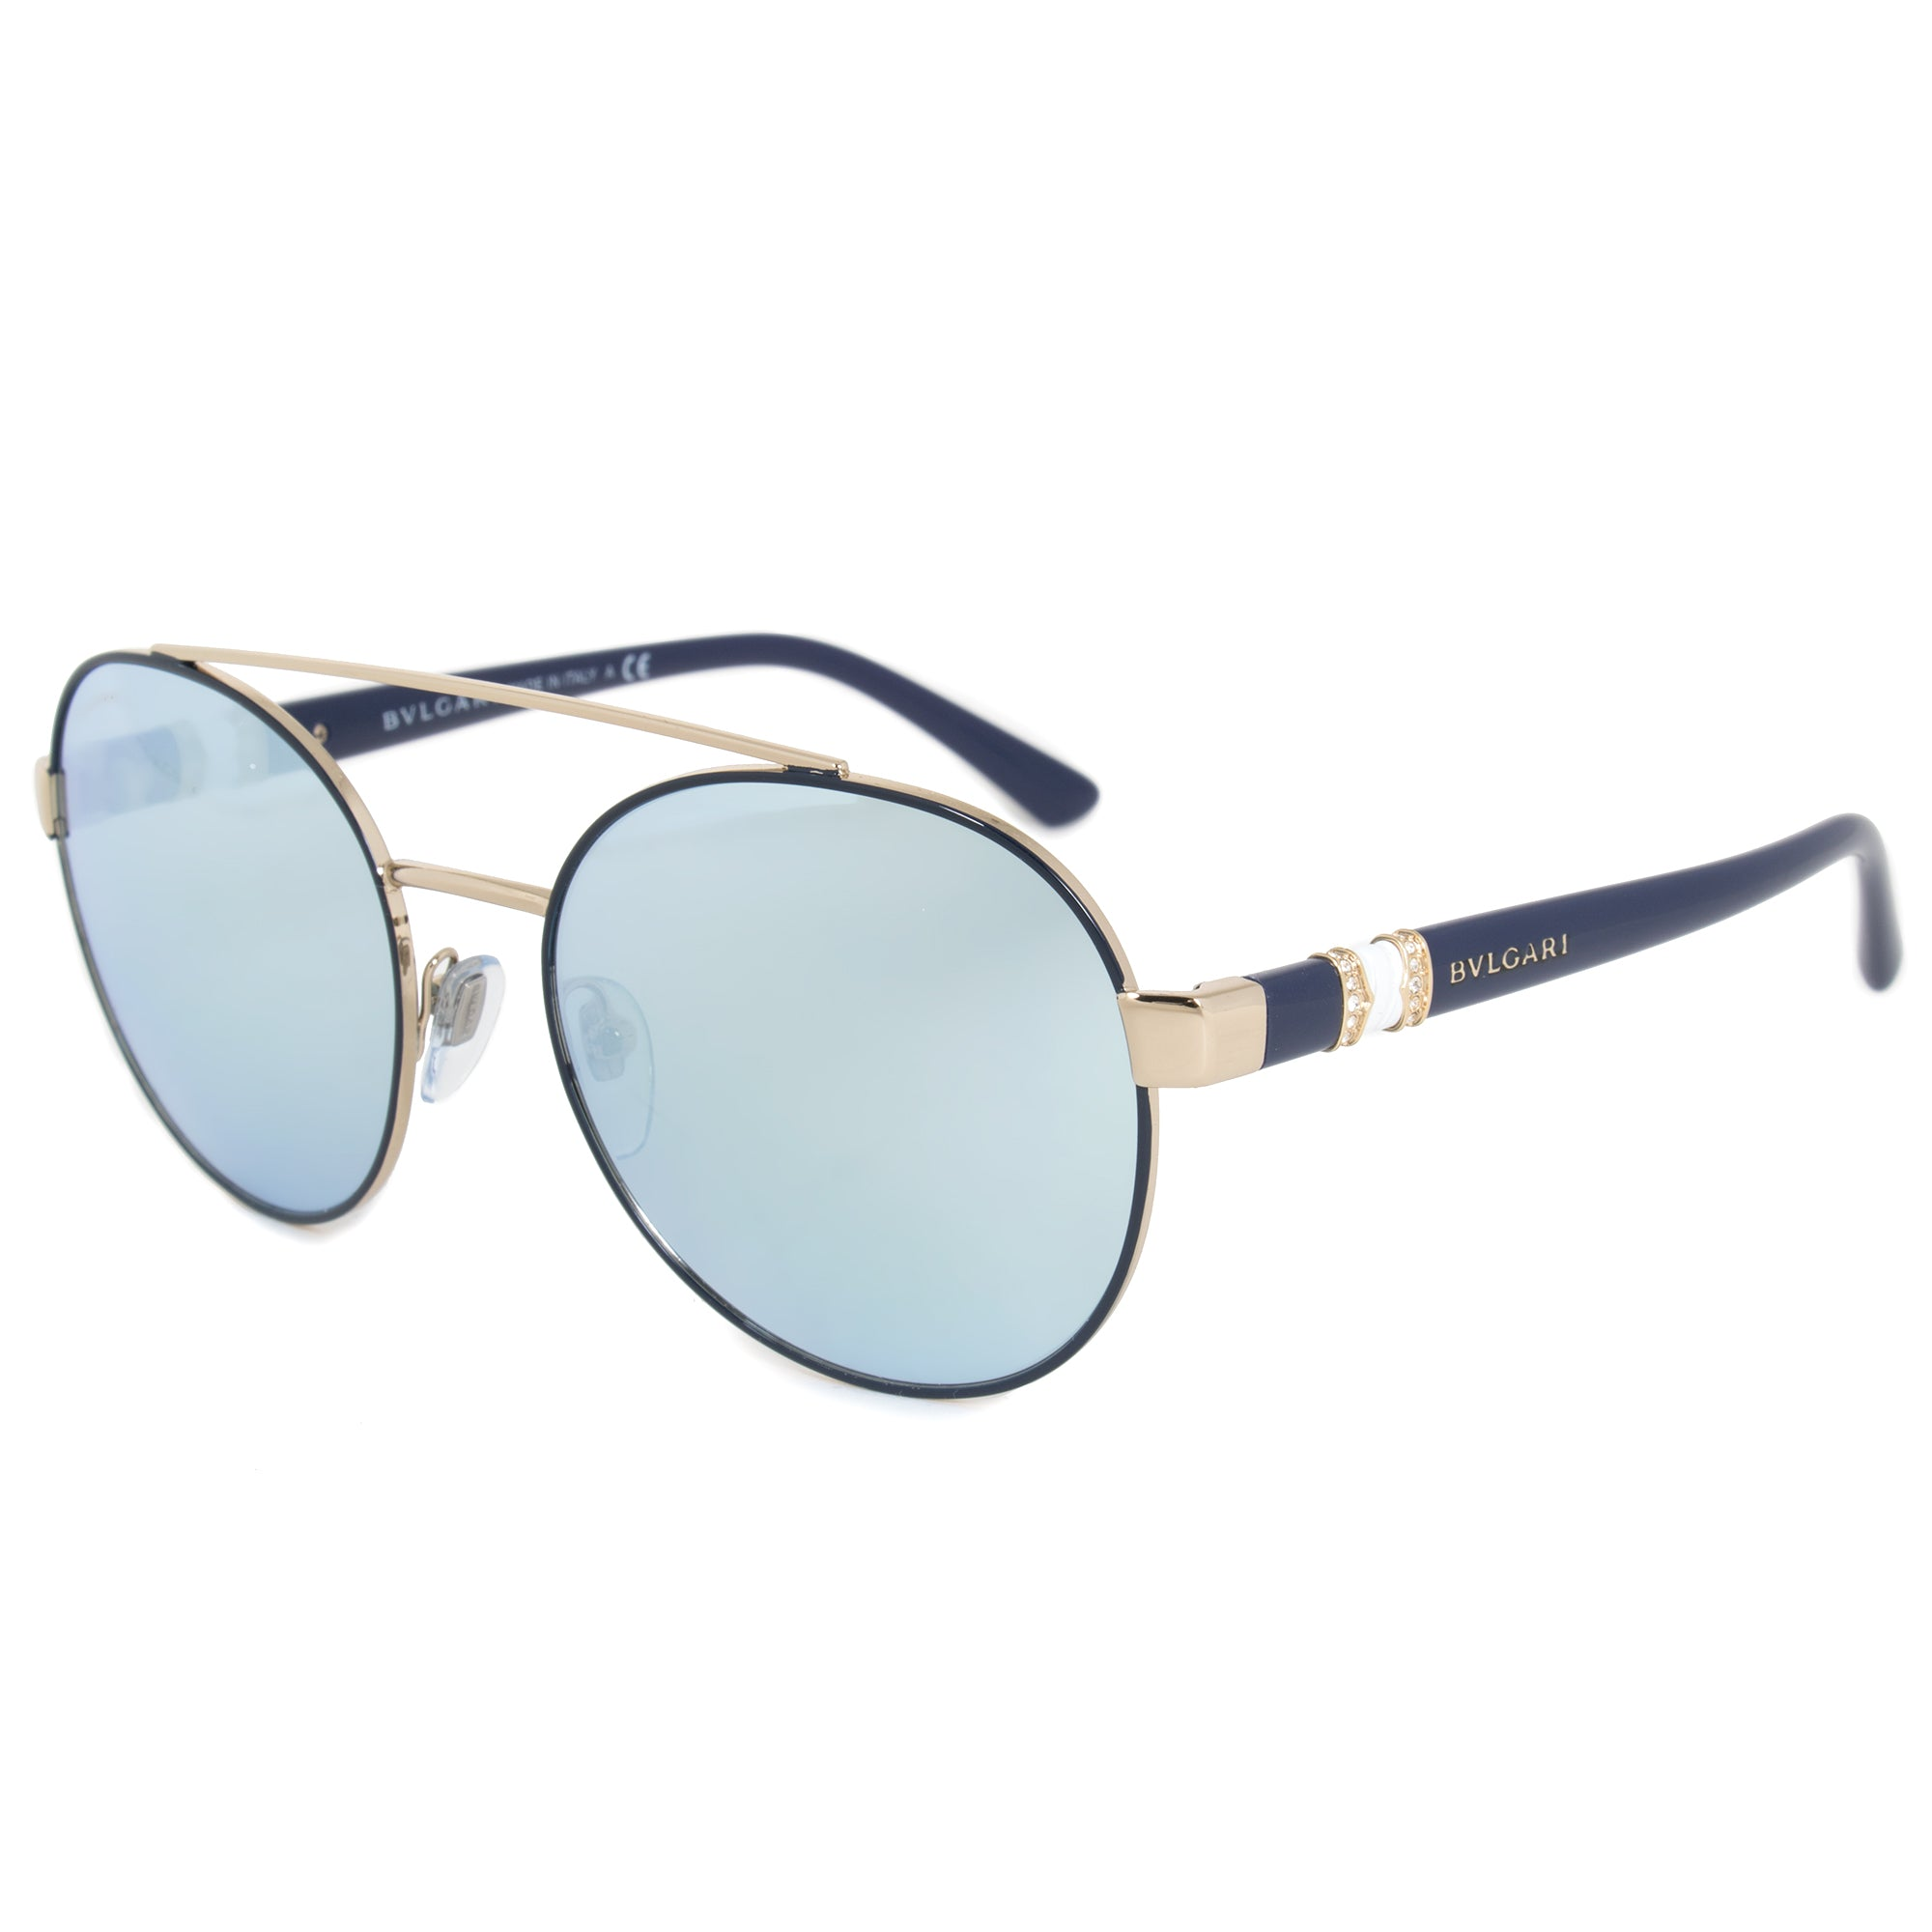 Bvlgari Round Sunglasses BV6085B | Blue Metal Frame | Blue Mirror Lenses